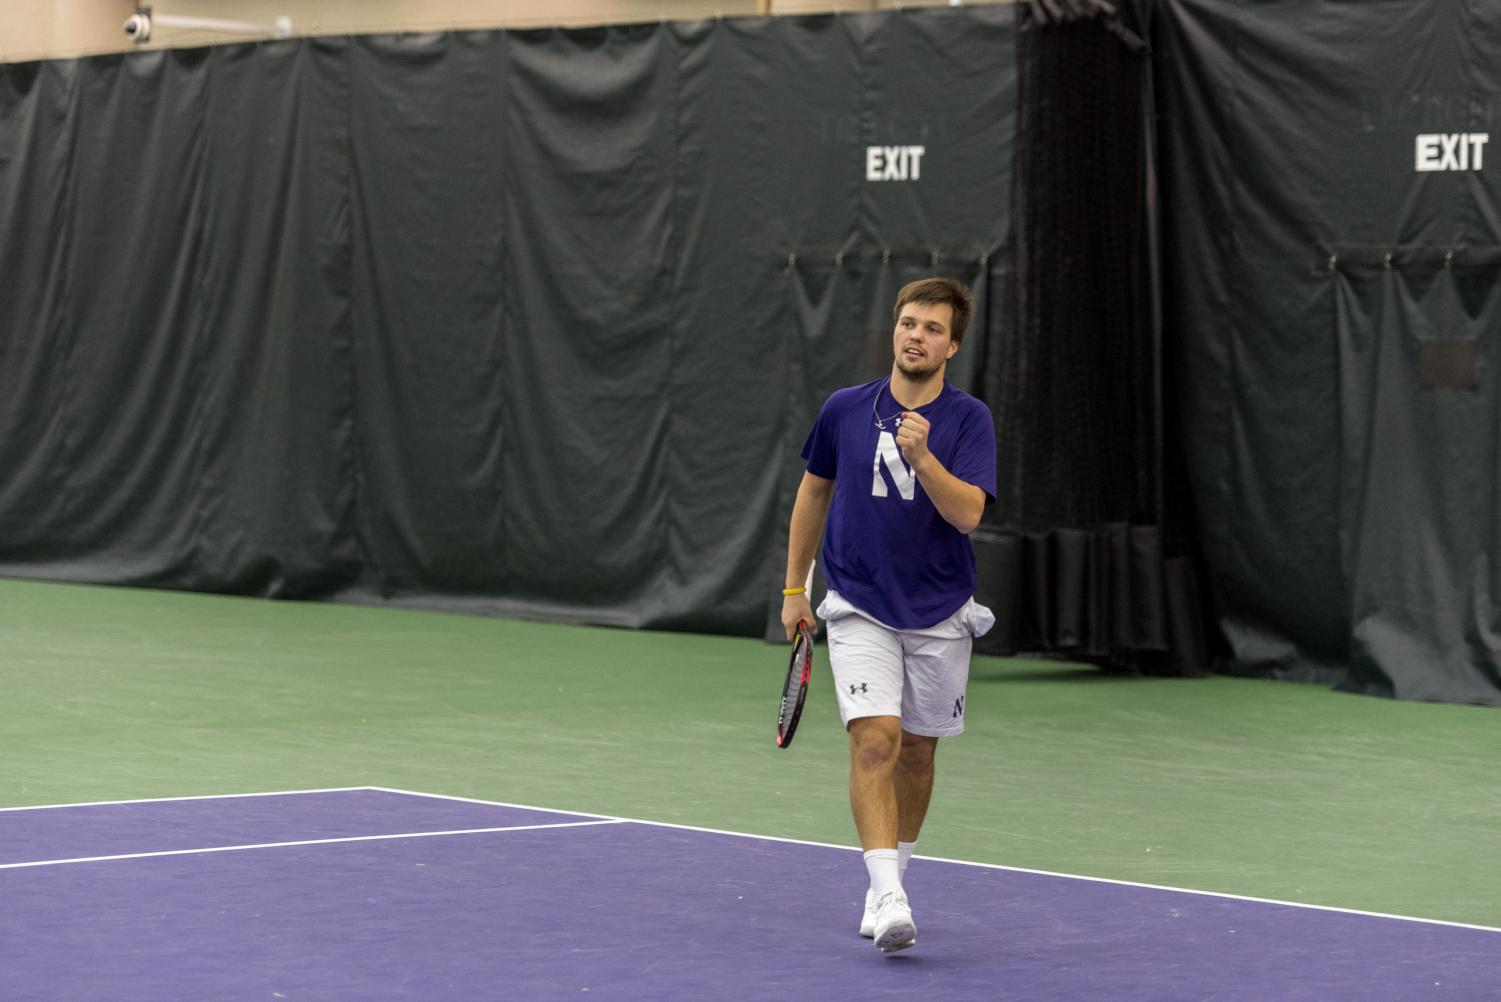 Dominik Stary pumps his first. The junior helped NU secure its first doubles point of the season.